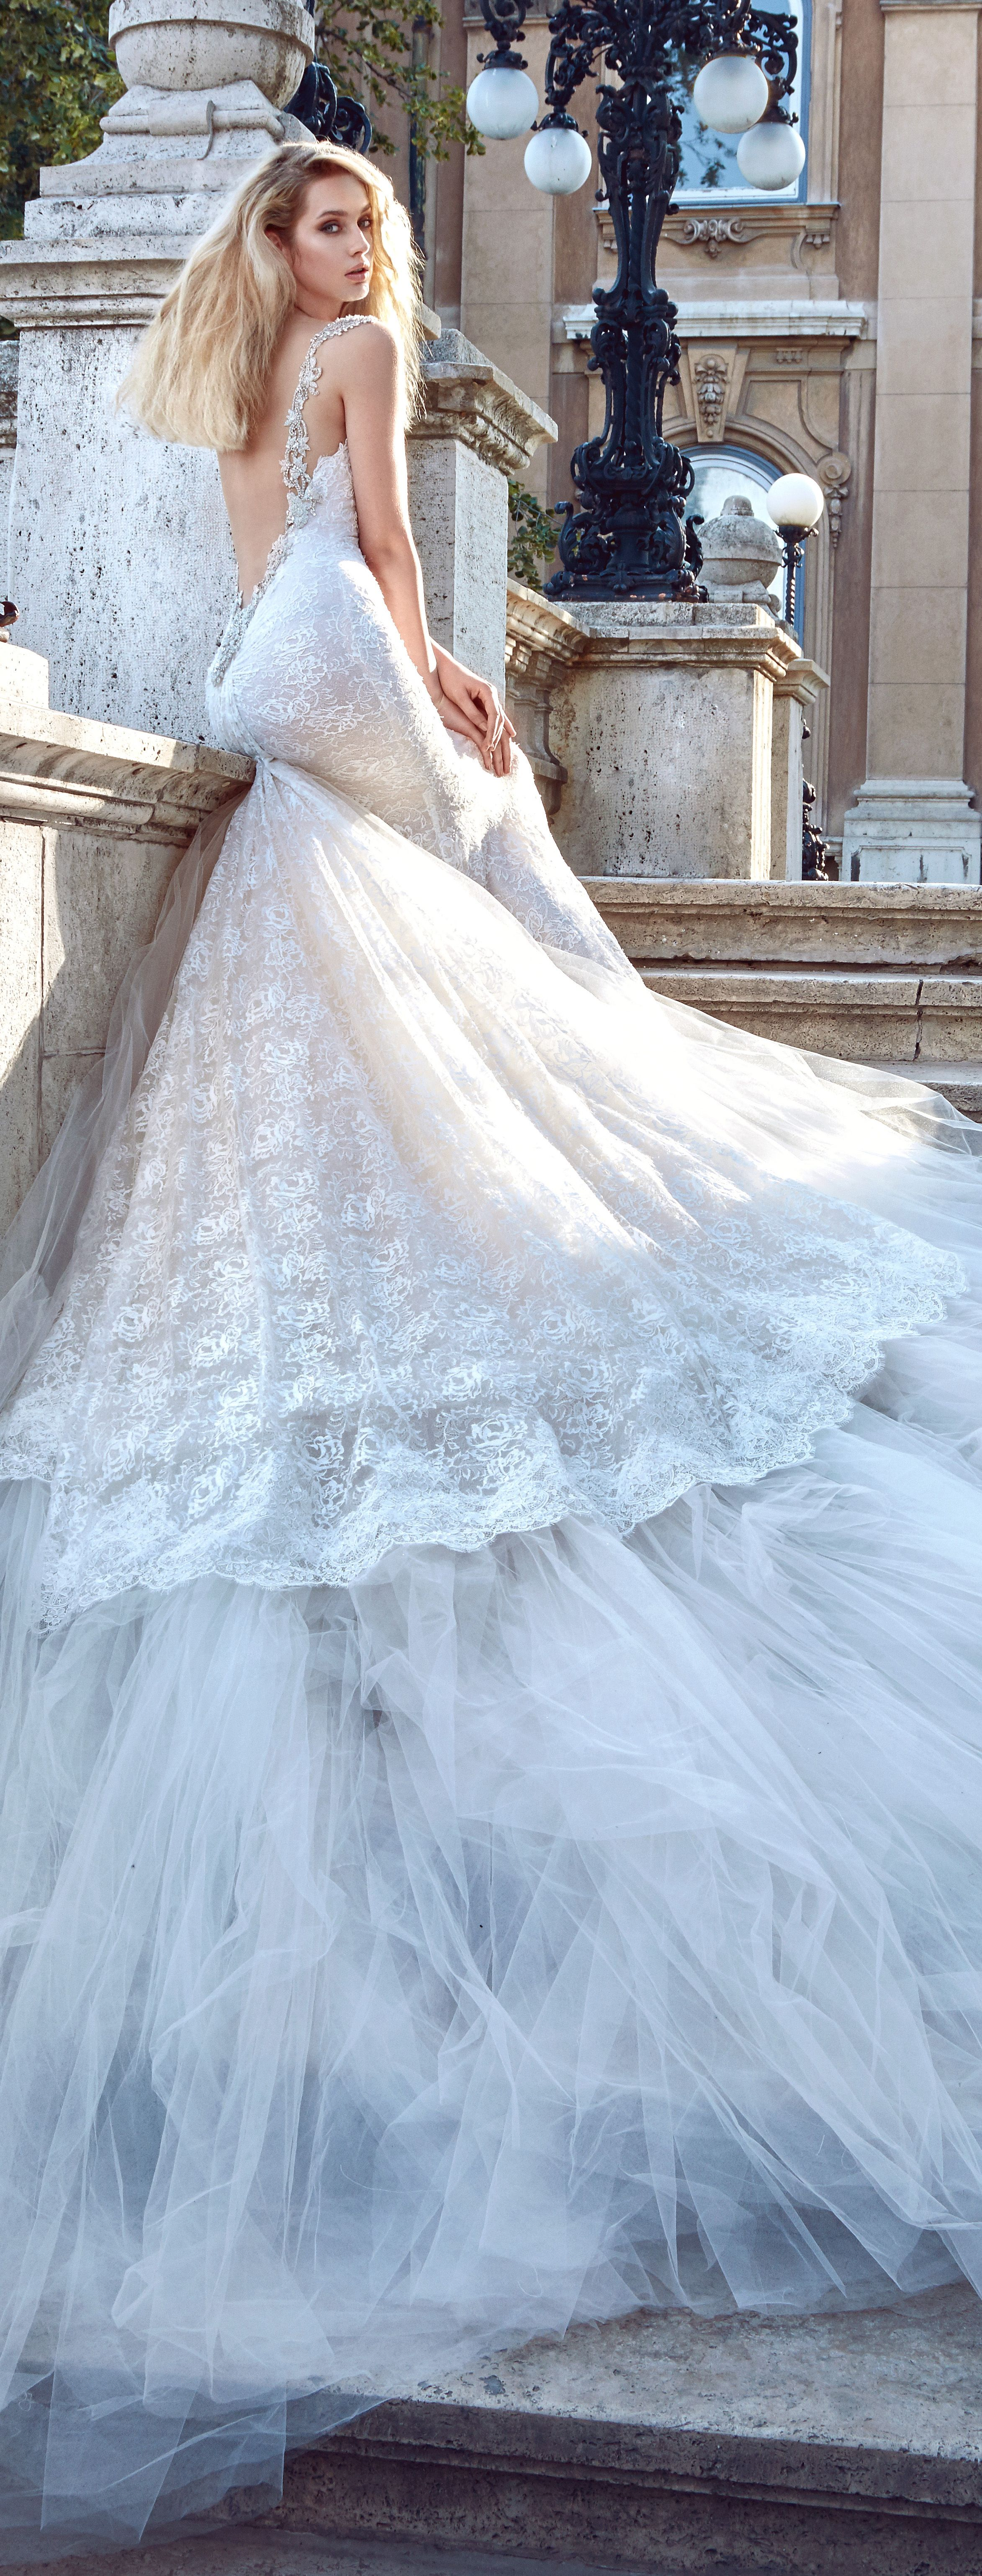 Wedding Dress By Galia Lahav Elizabeth Consists Of French Ivory Lace Over A Sparkly Sheer